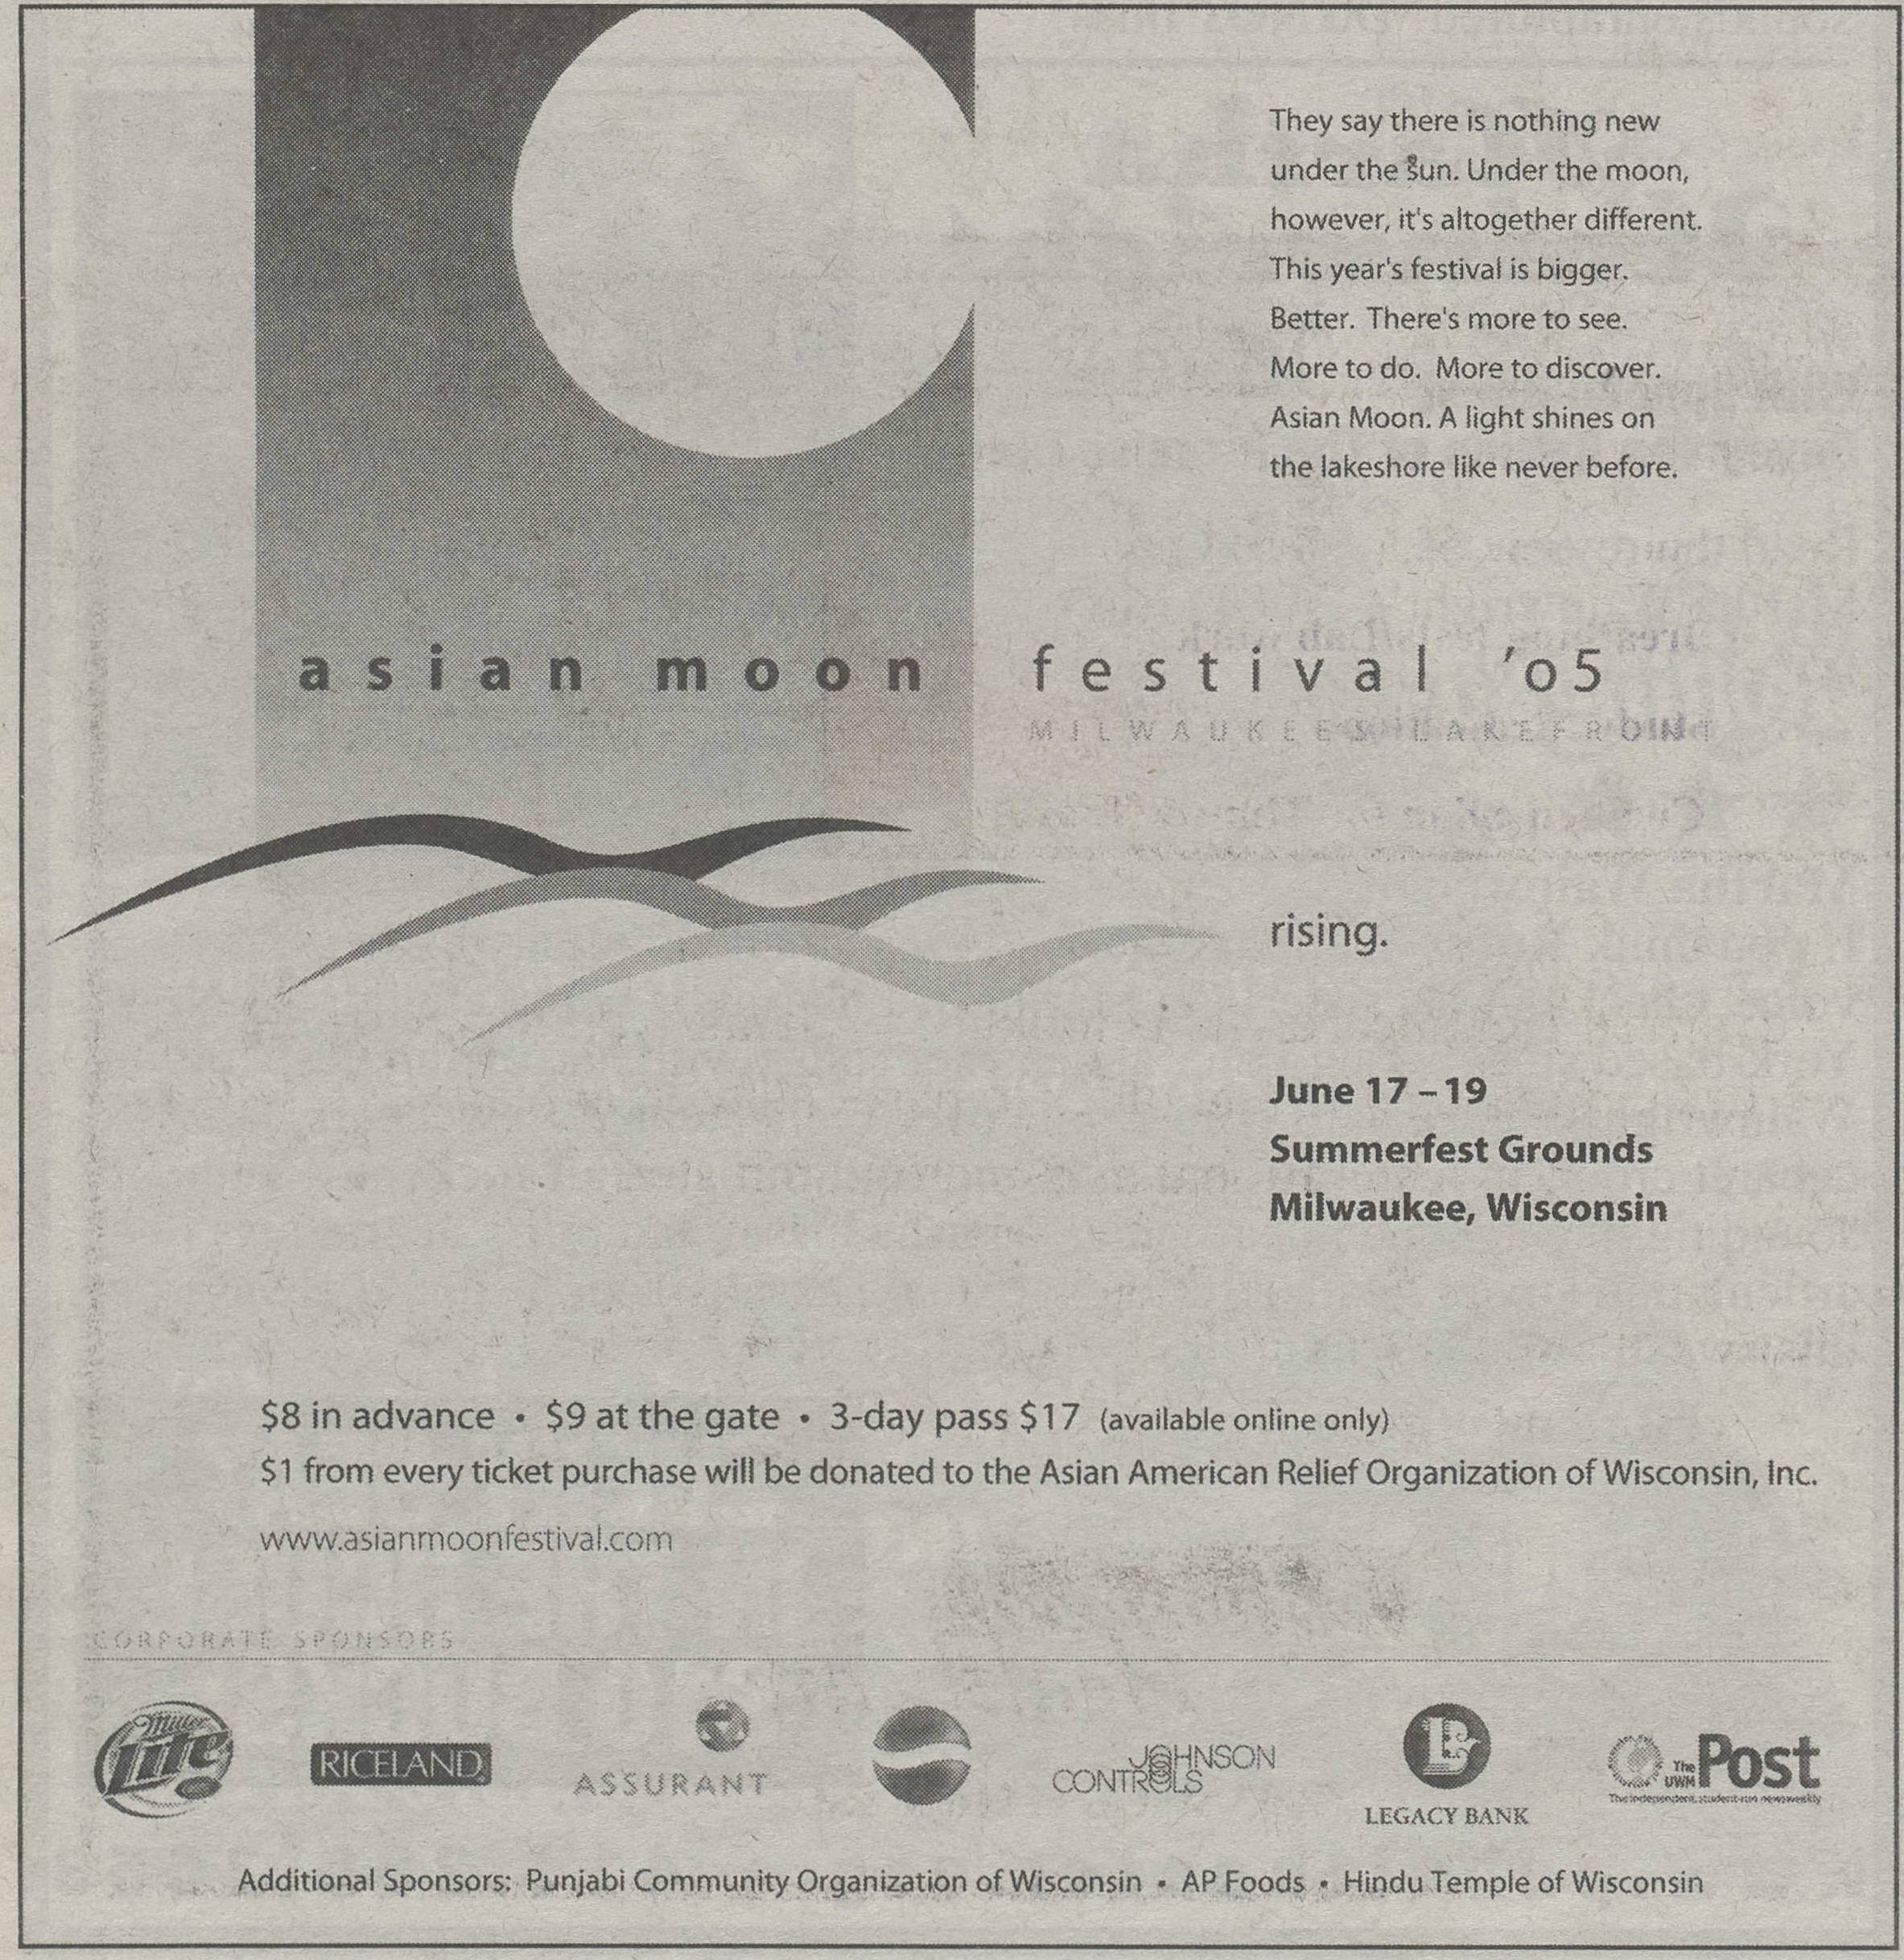 Milwaukee's Asian Moon Festival was held annually between 1994 and 2005. This newspaper advertisement is from the final year of the festival.